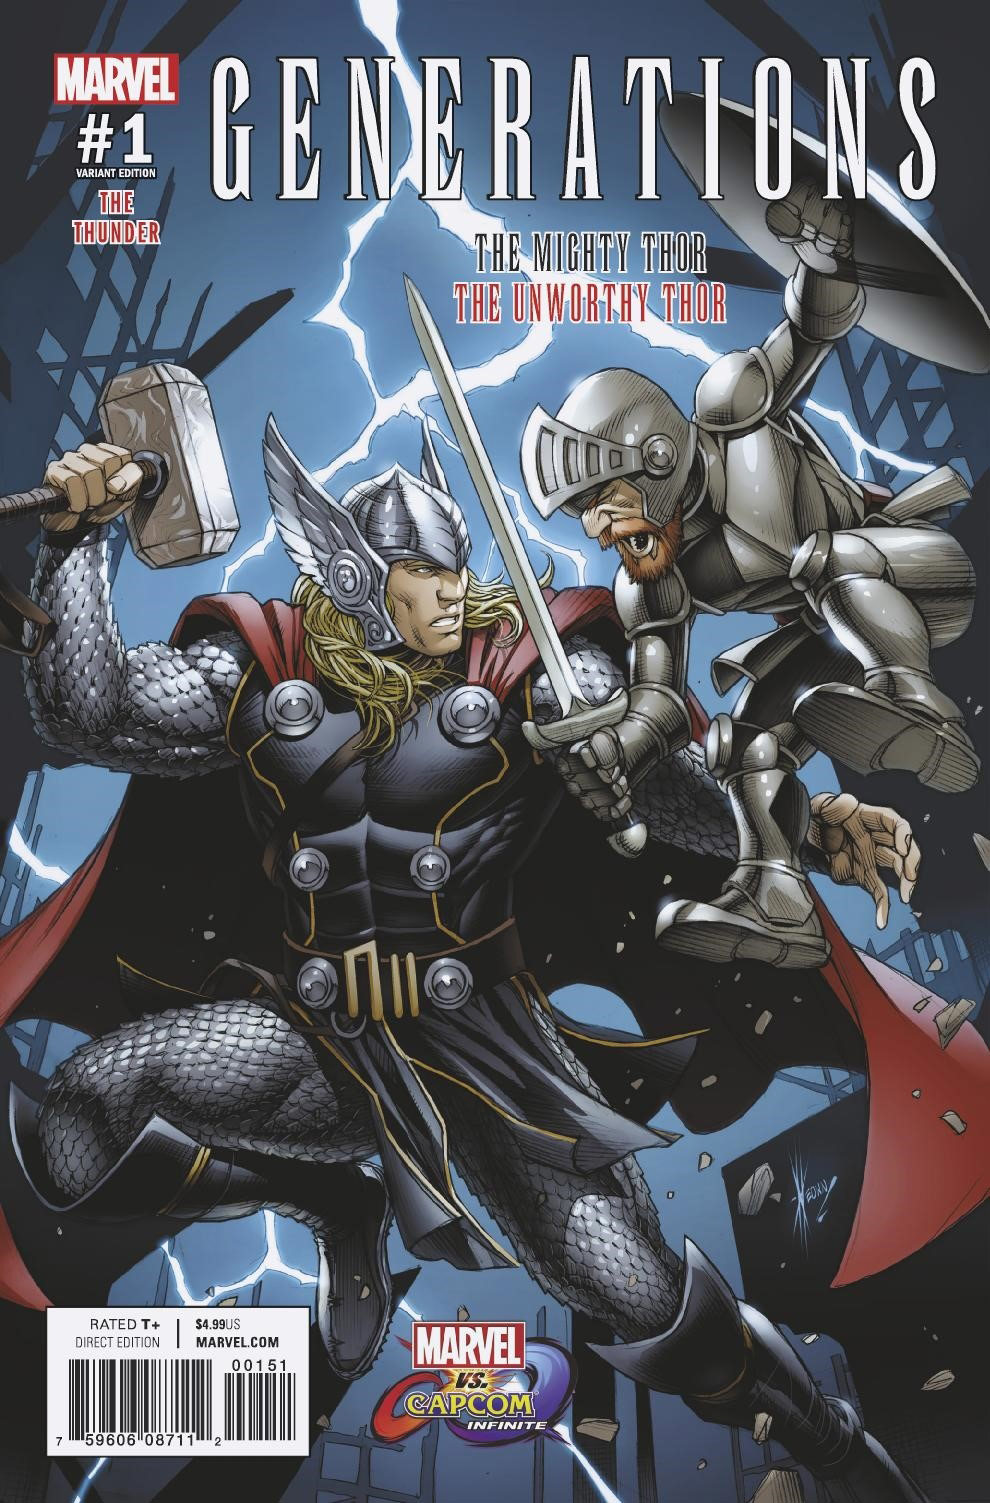 More Marvel vs. Capcom: Infinite variant covers 4 out of 5 image gallery